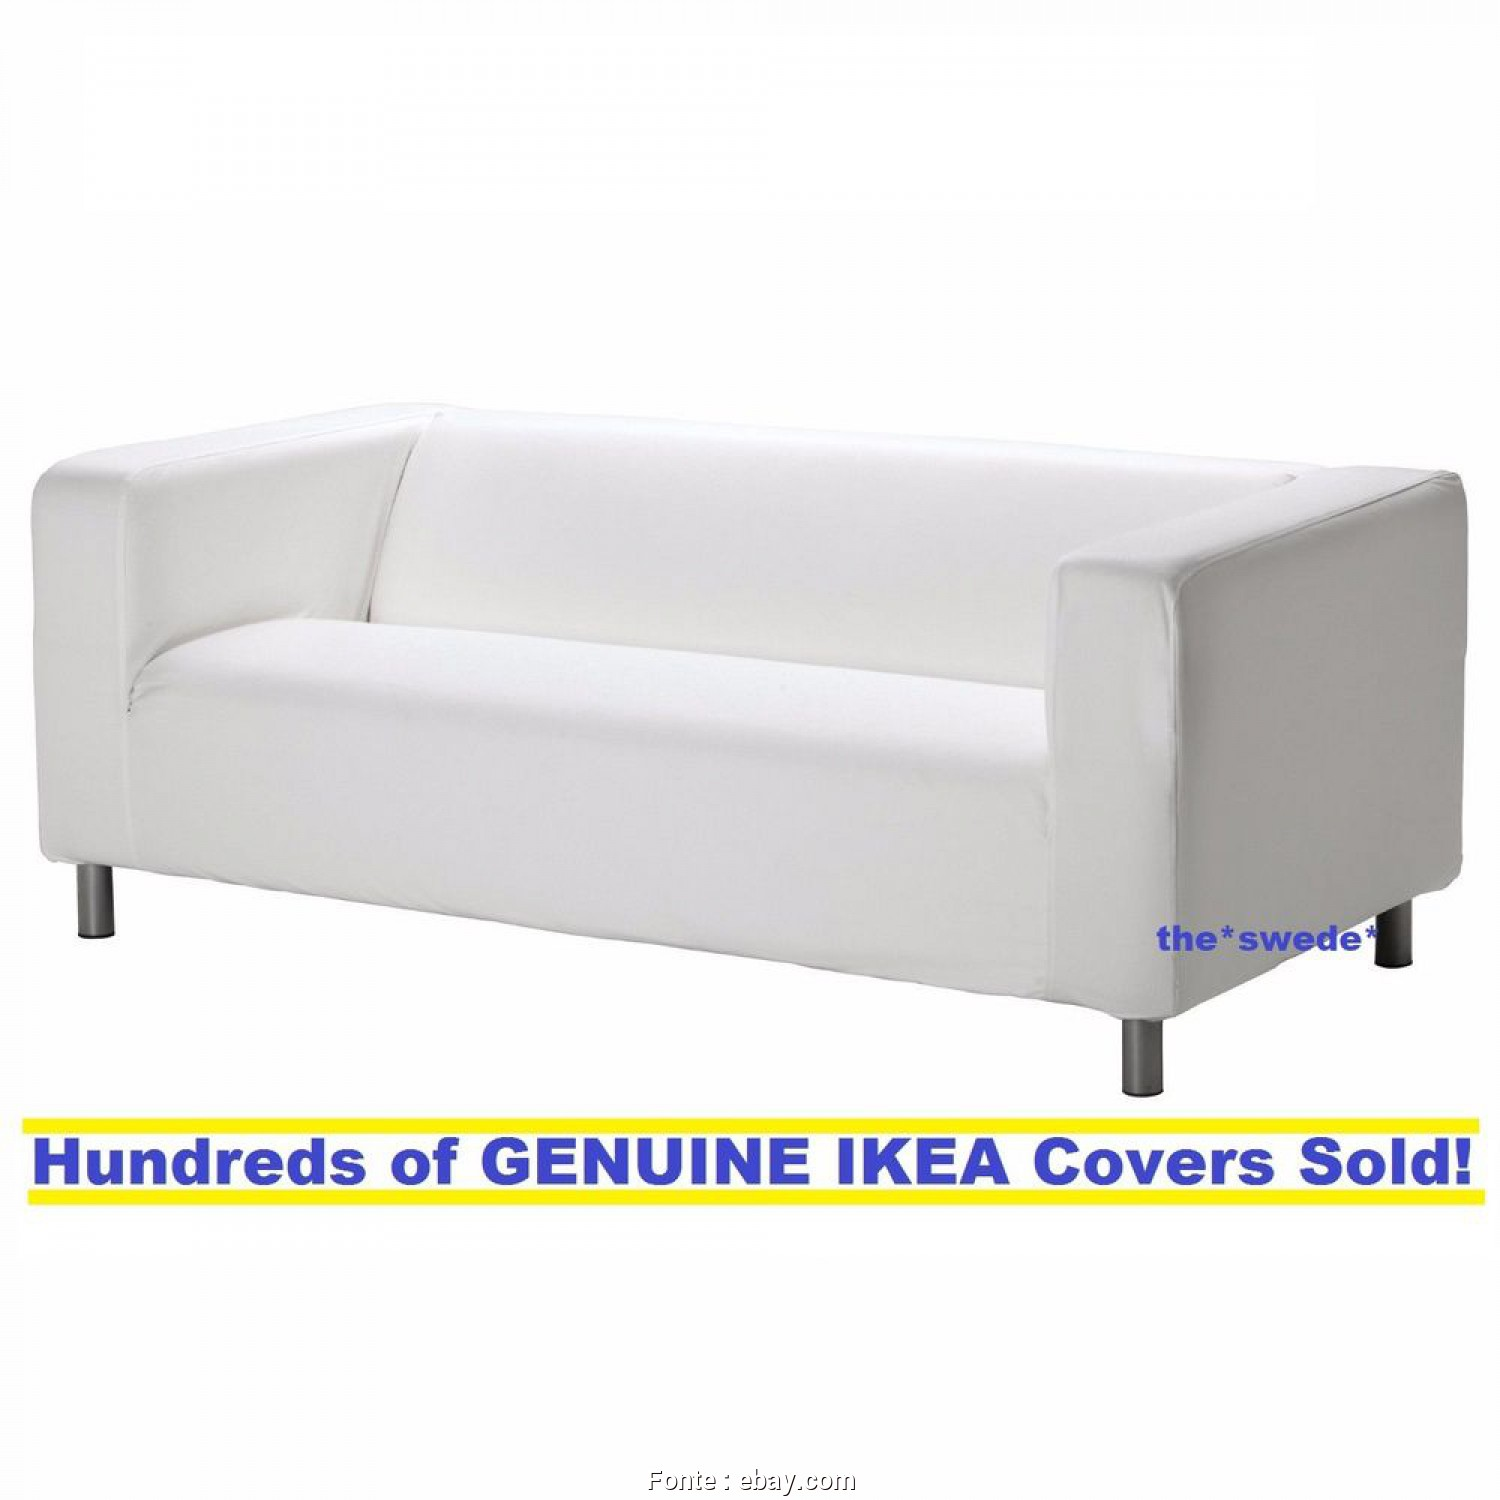 Ikea Klippan Sofa Ebay, Deale Details About Ikea KLIPPAN Loveseat (2 Seat Sofa) Cover Slipcover GRANAN WHITE New!